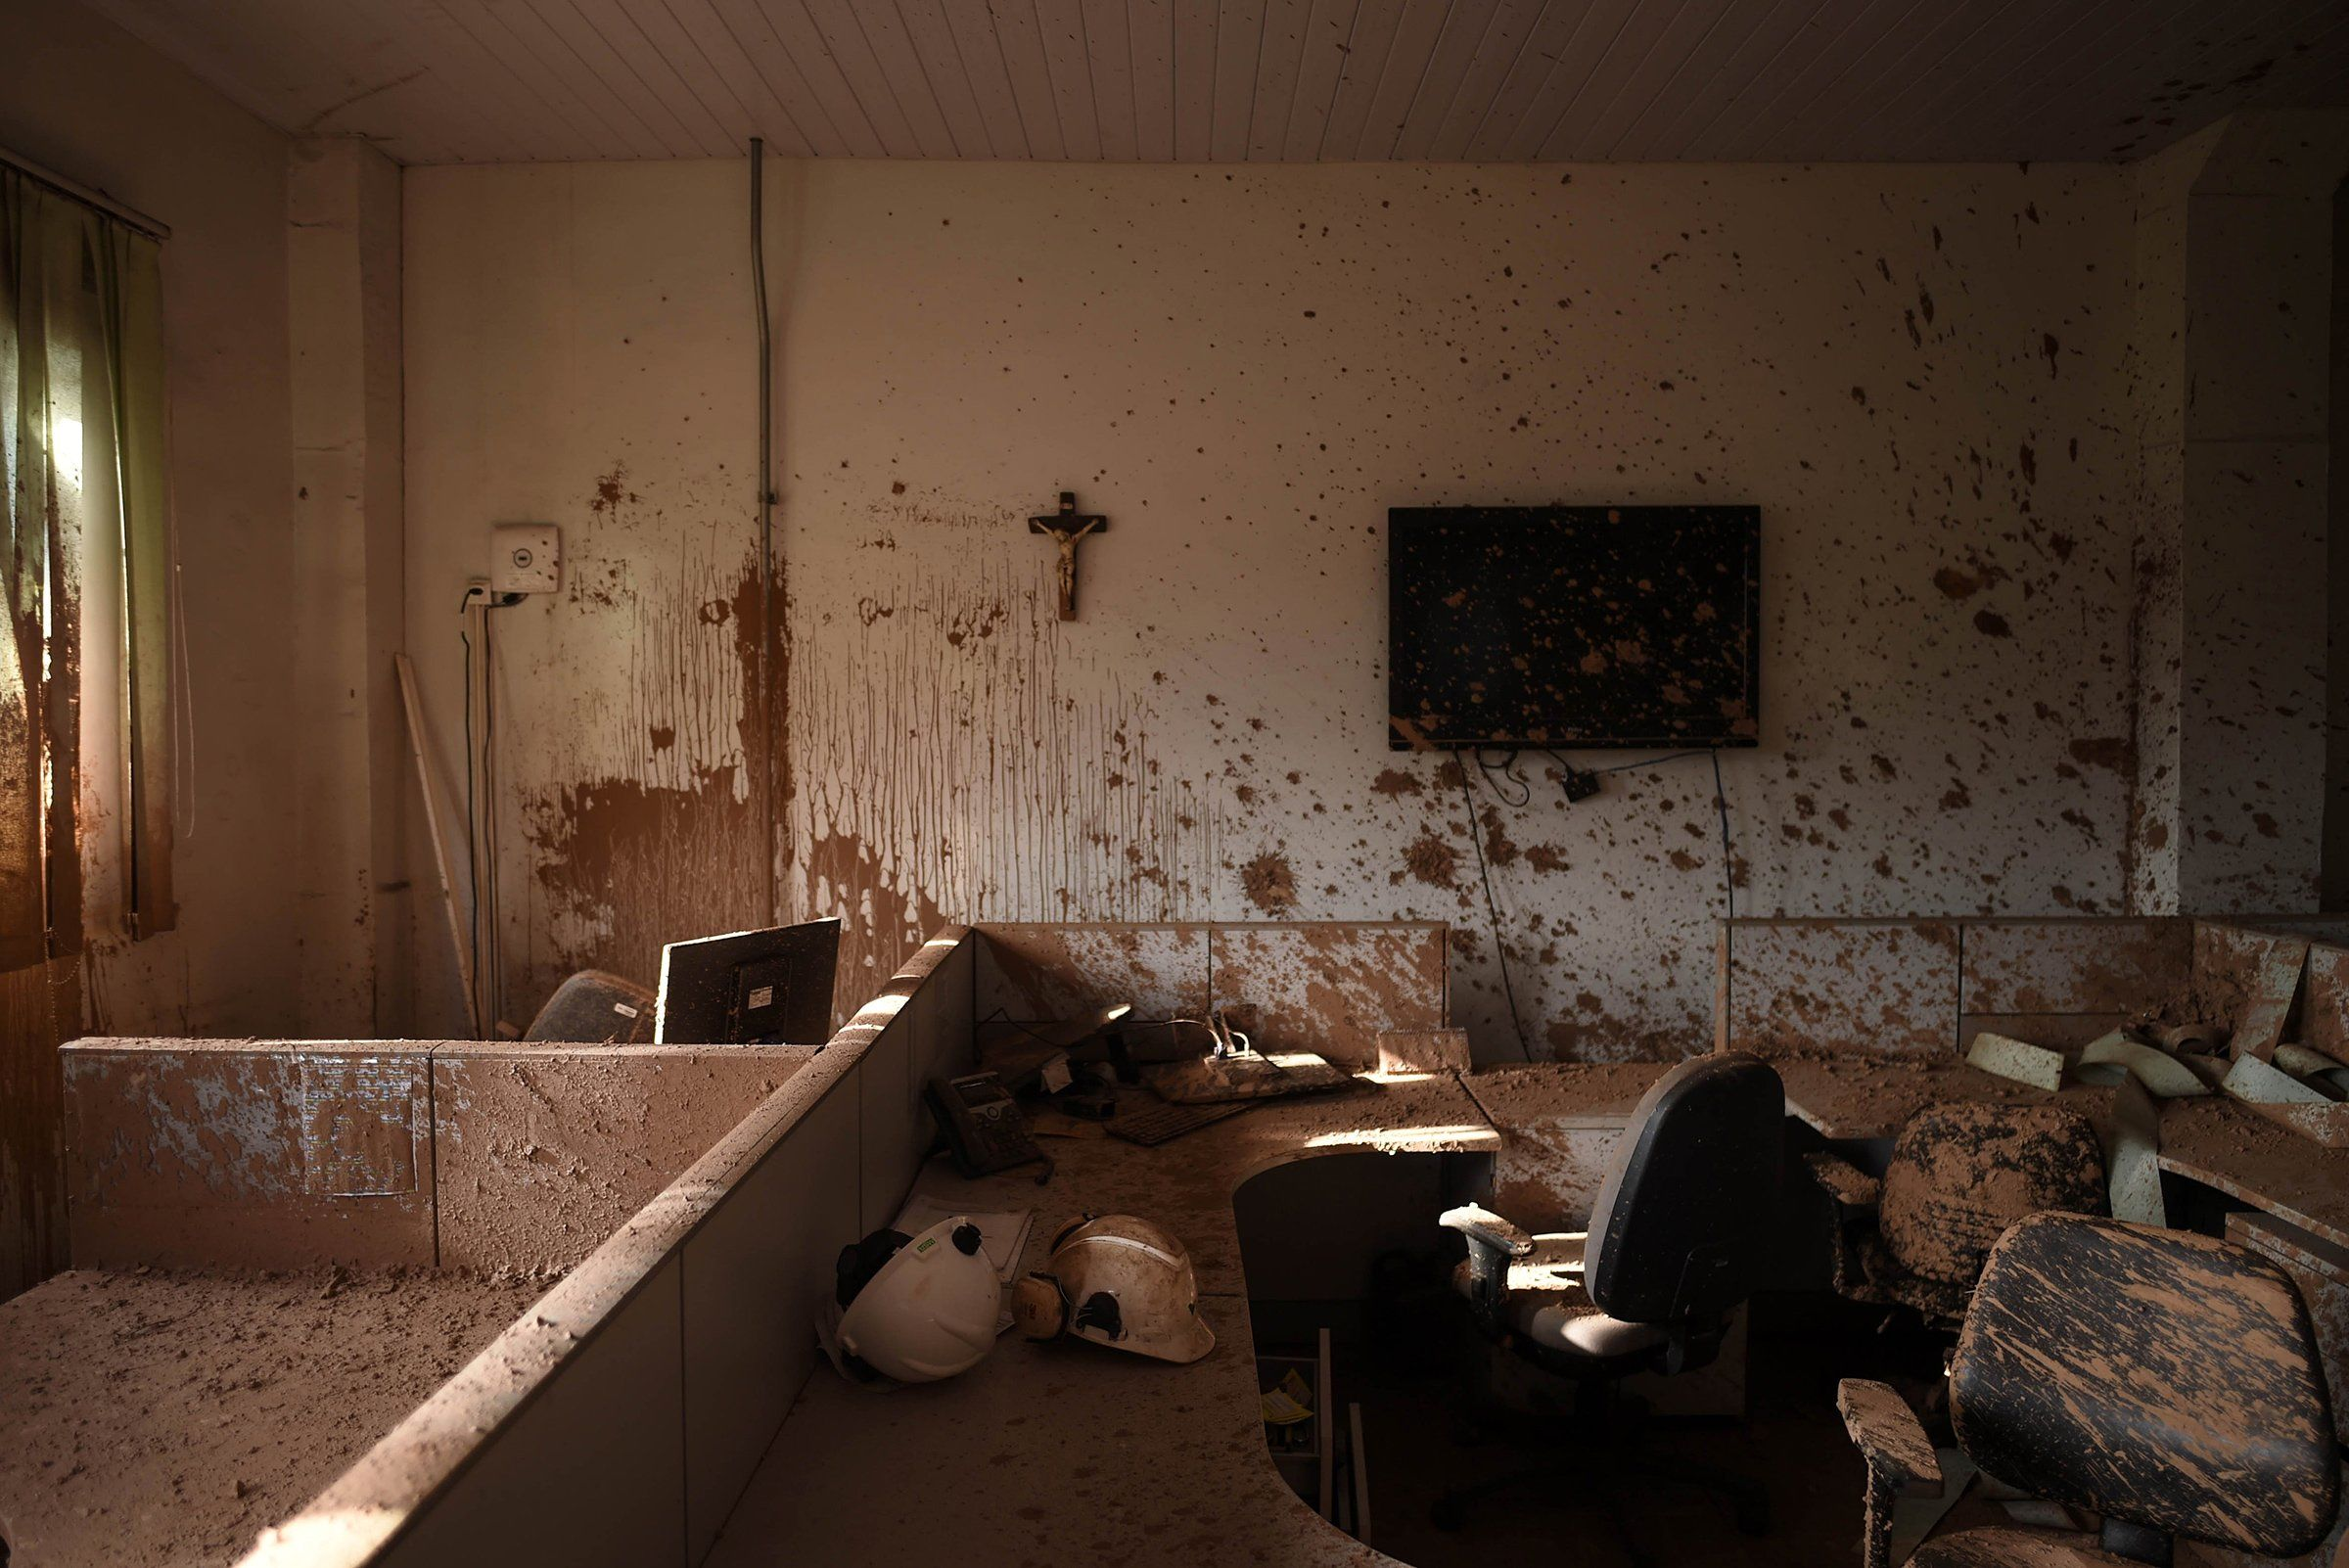 A mud-caked office at the mining company Vale, 20 days after the deadly rupture of a tailings dam in Córrego do Feijão, near Brumadinho, in Brazil on Feb. 13.